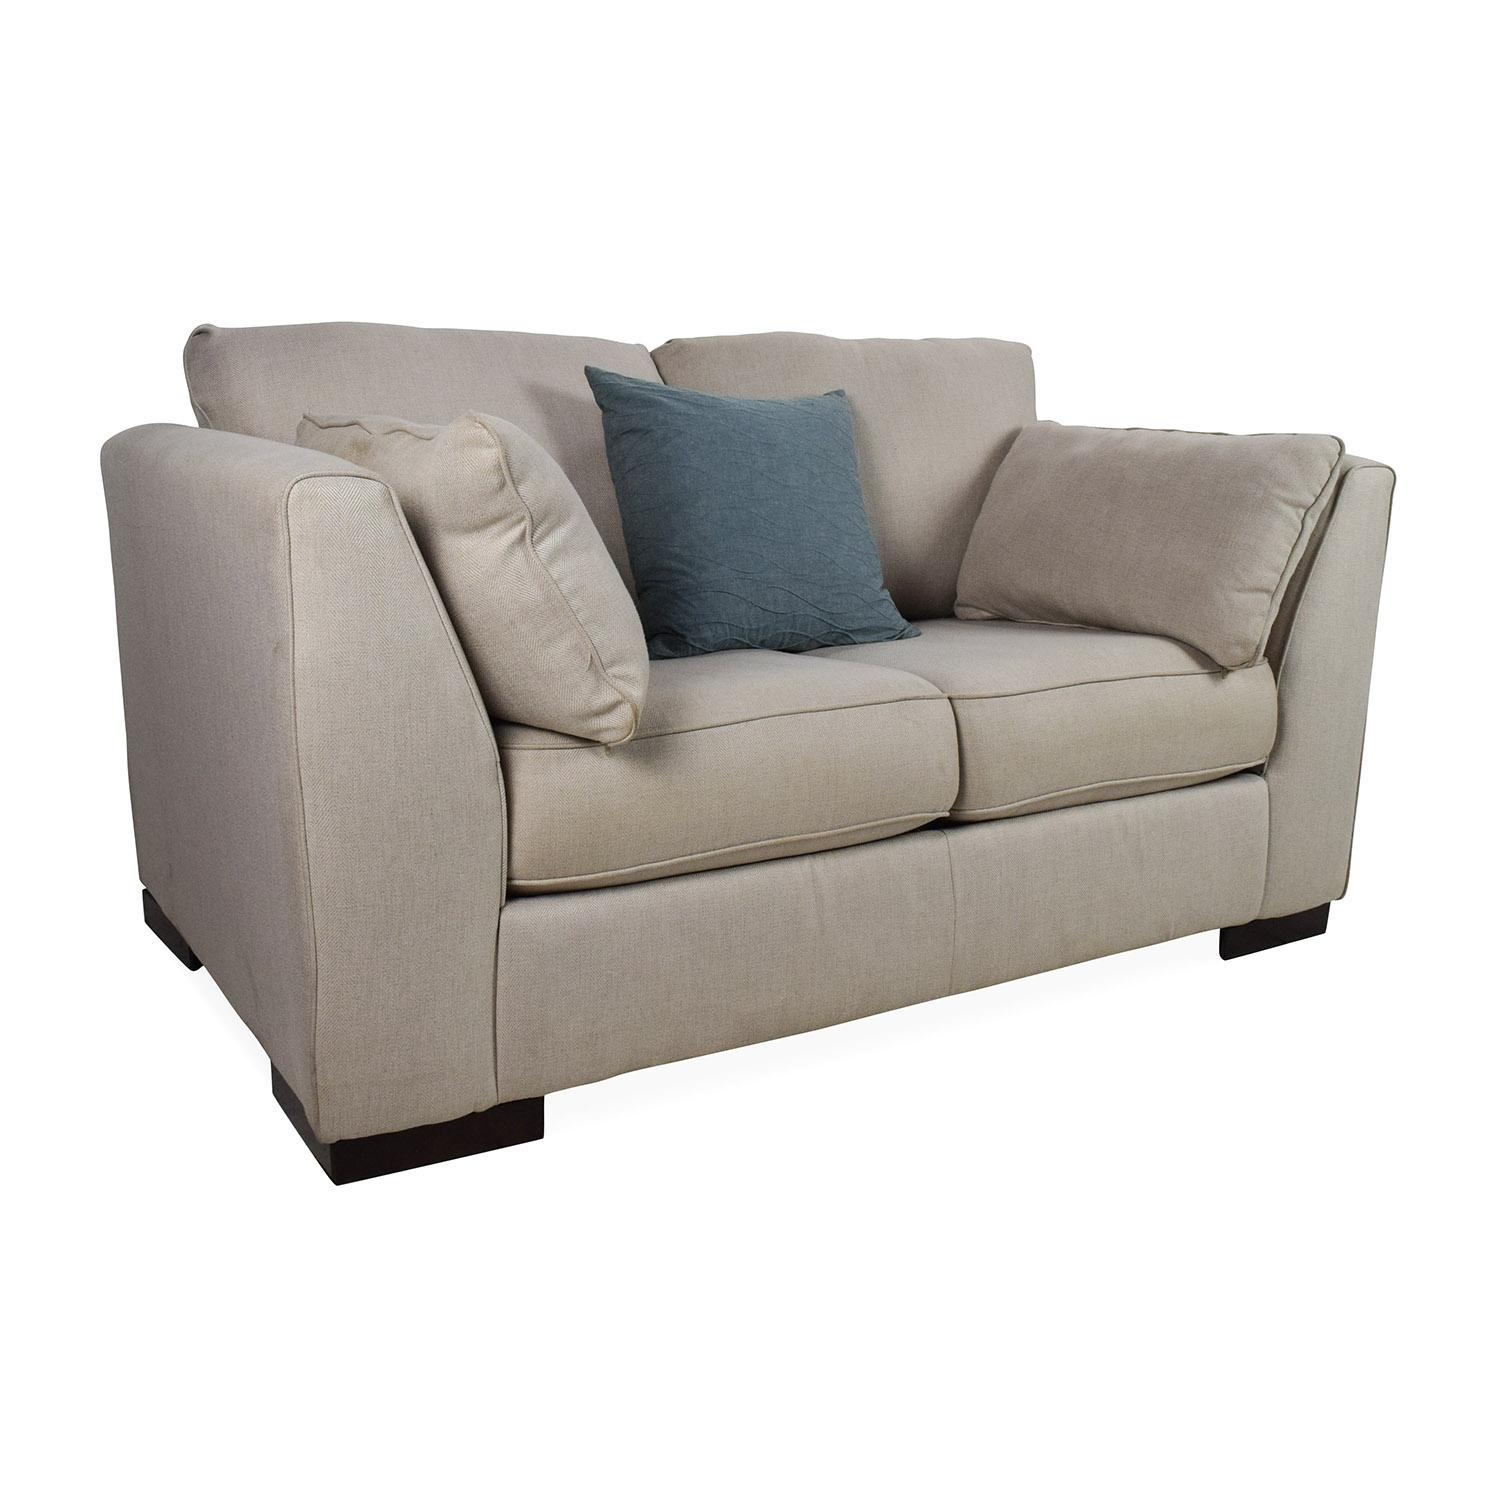 20+ Choices Of Pier 1 Sofa Beds